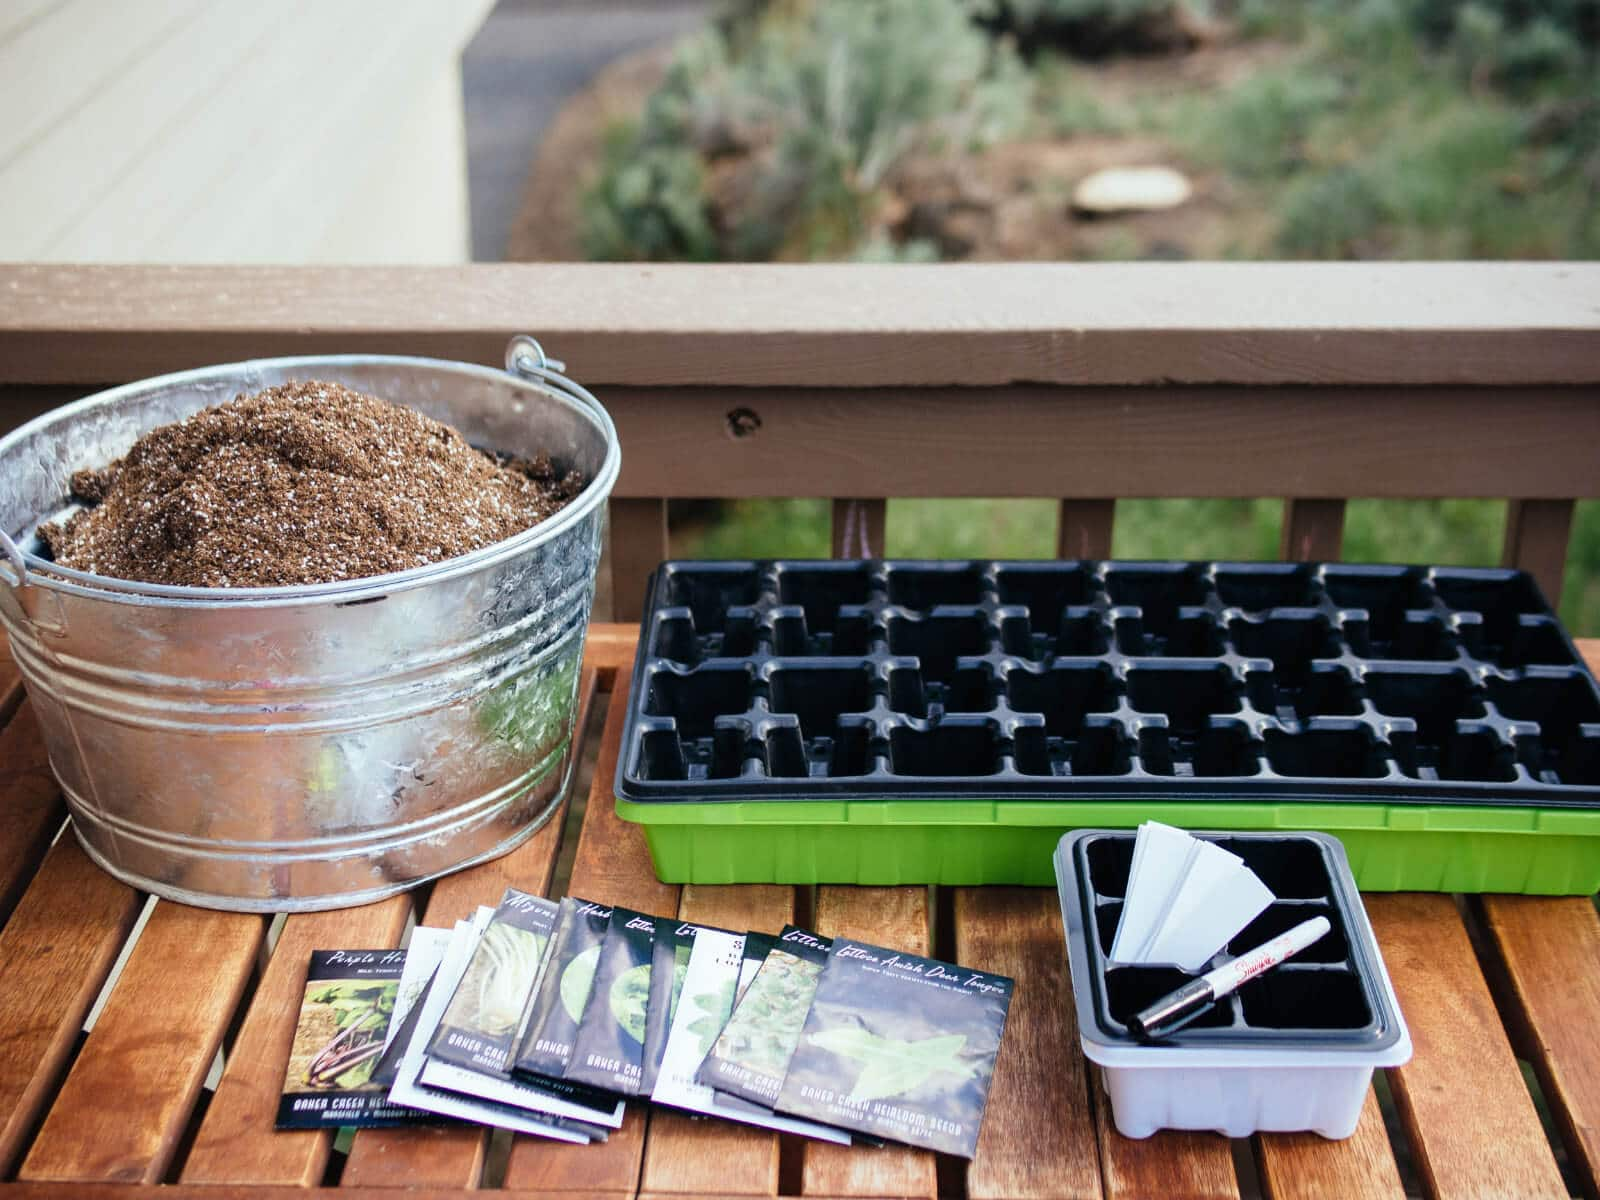 Gather all of your seed starting supplies